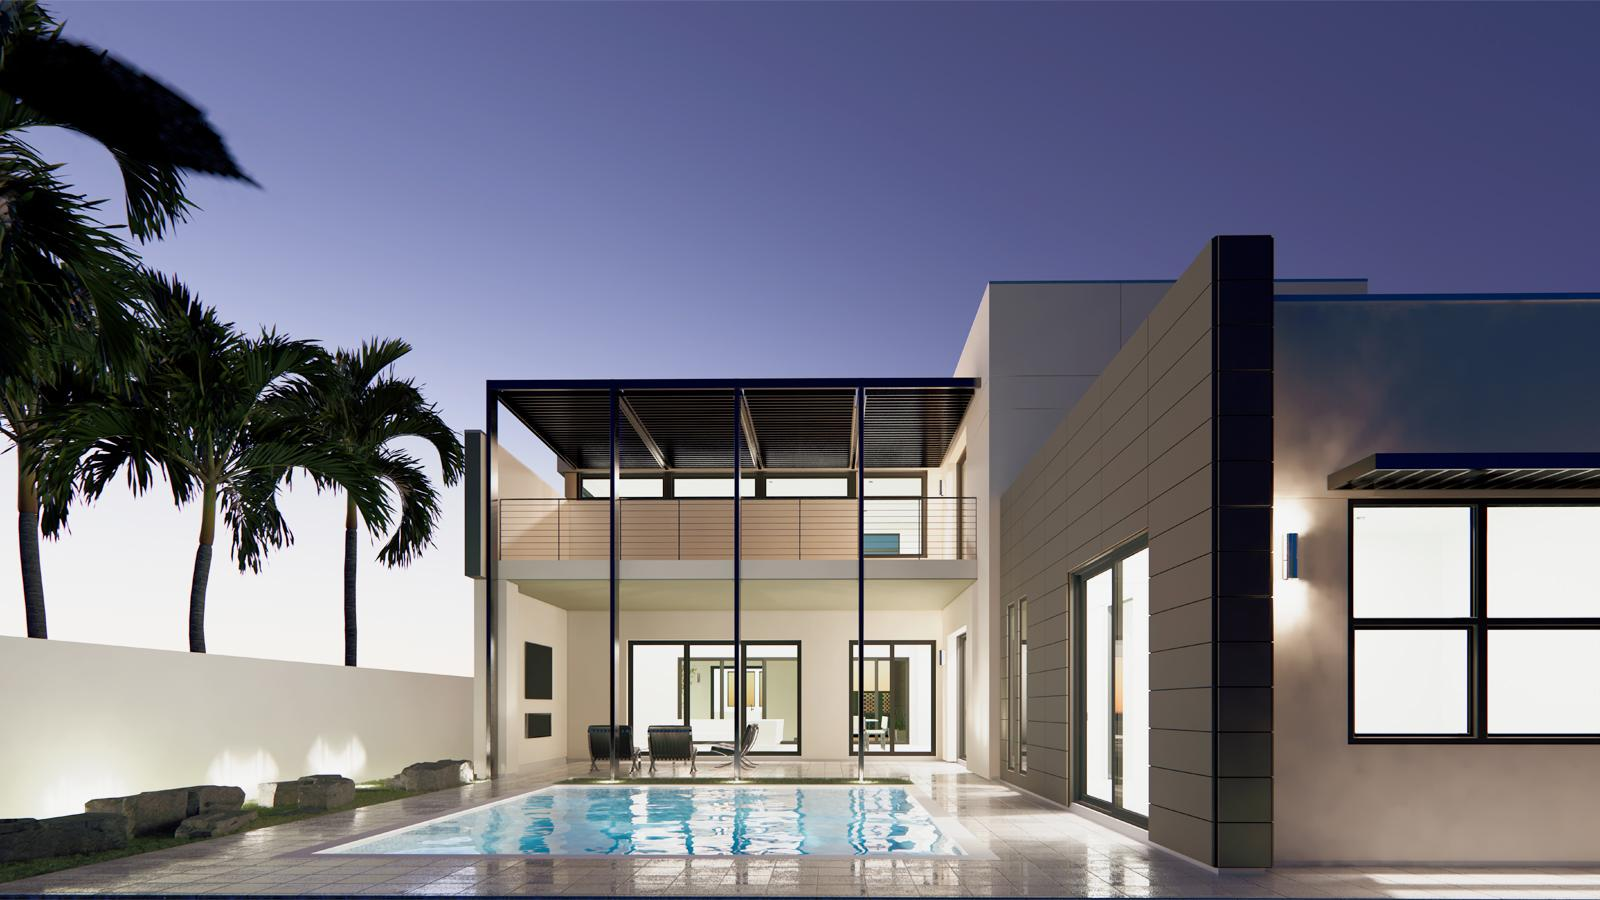 Miralon - Robert Hidey Architects